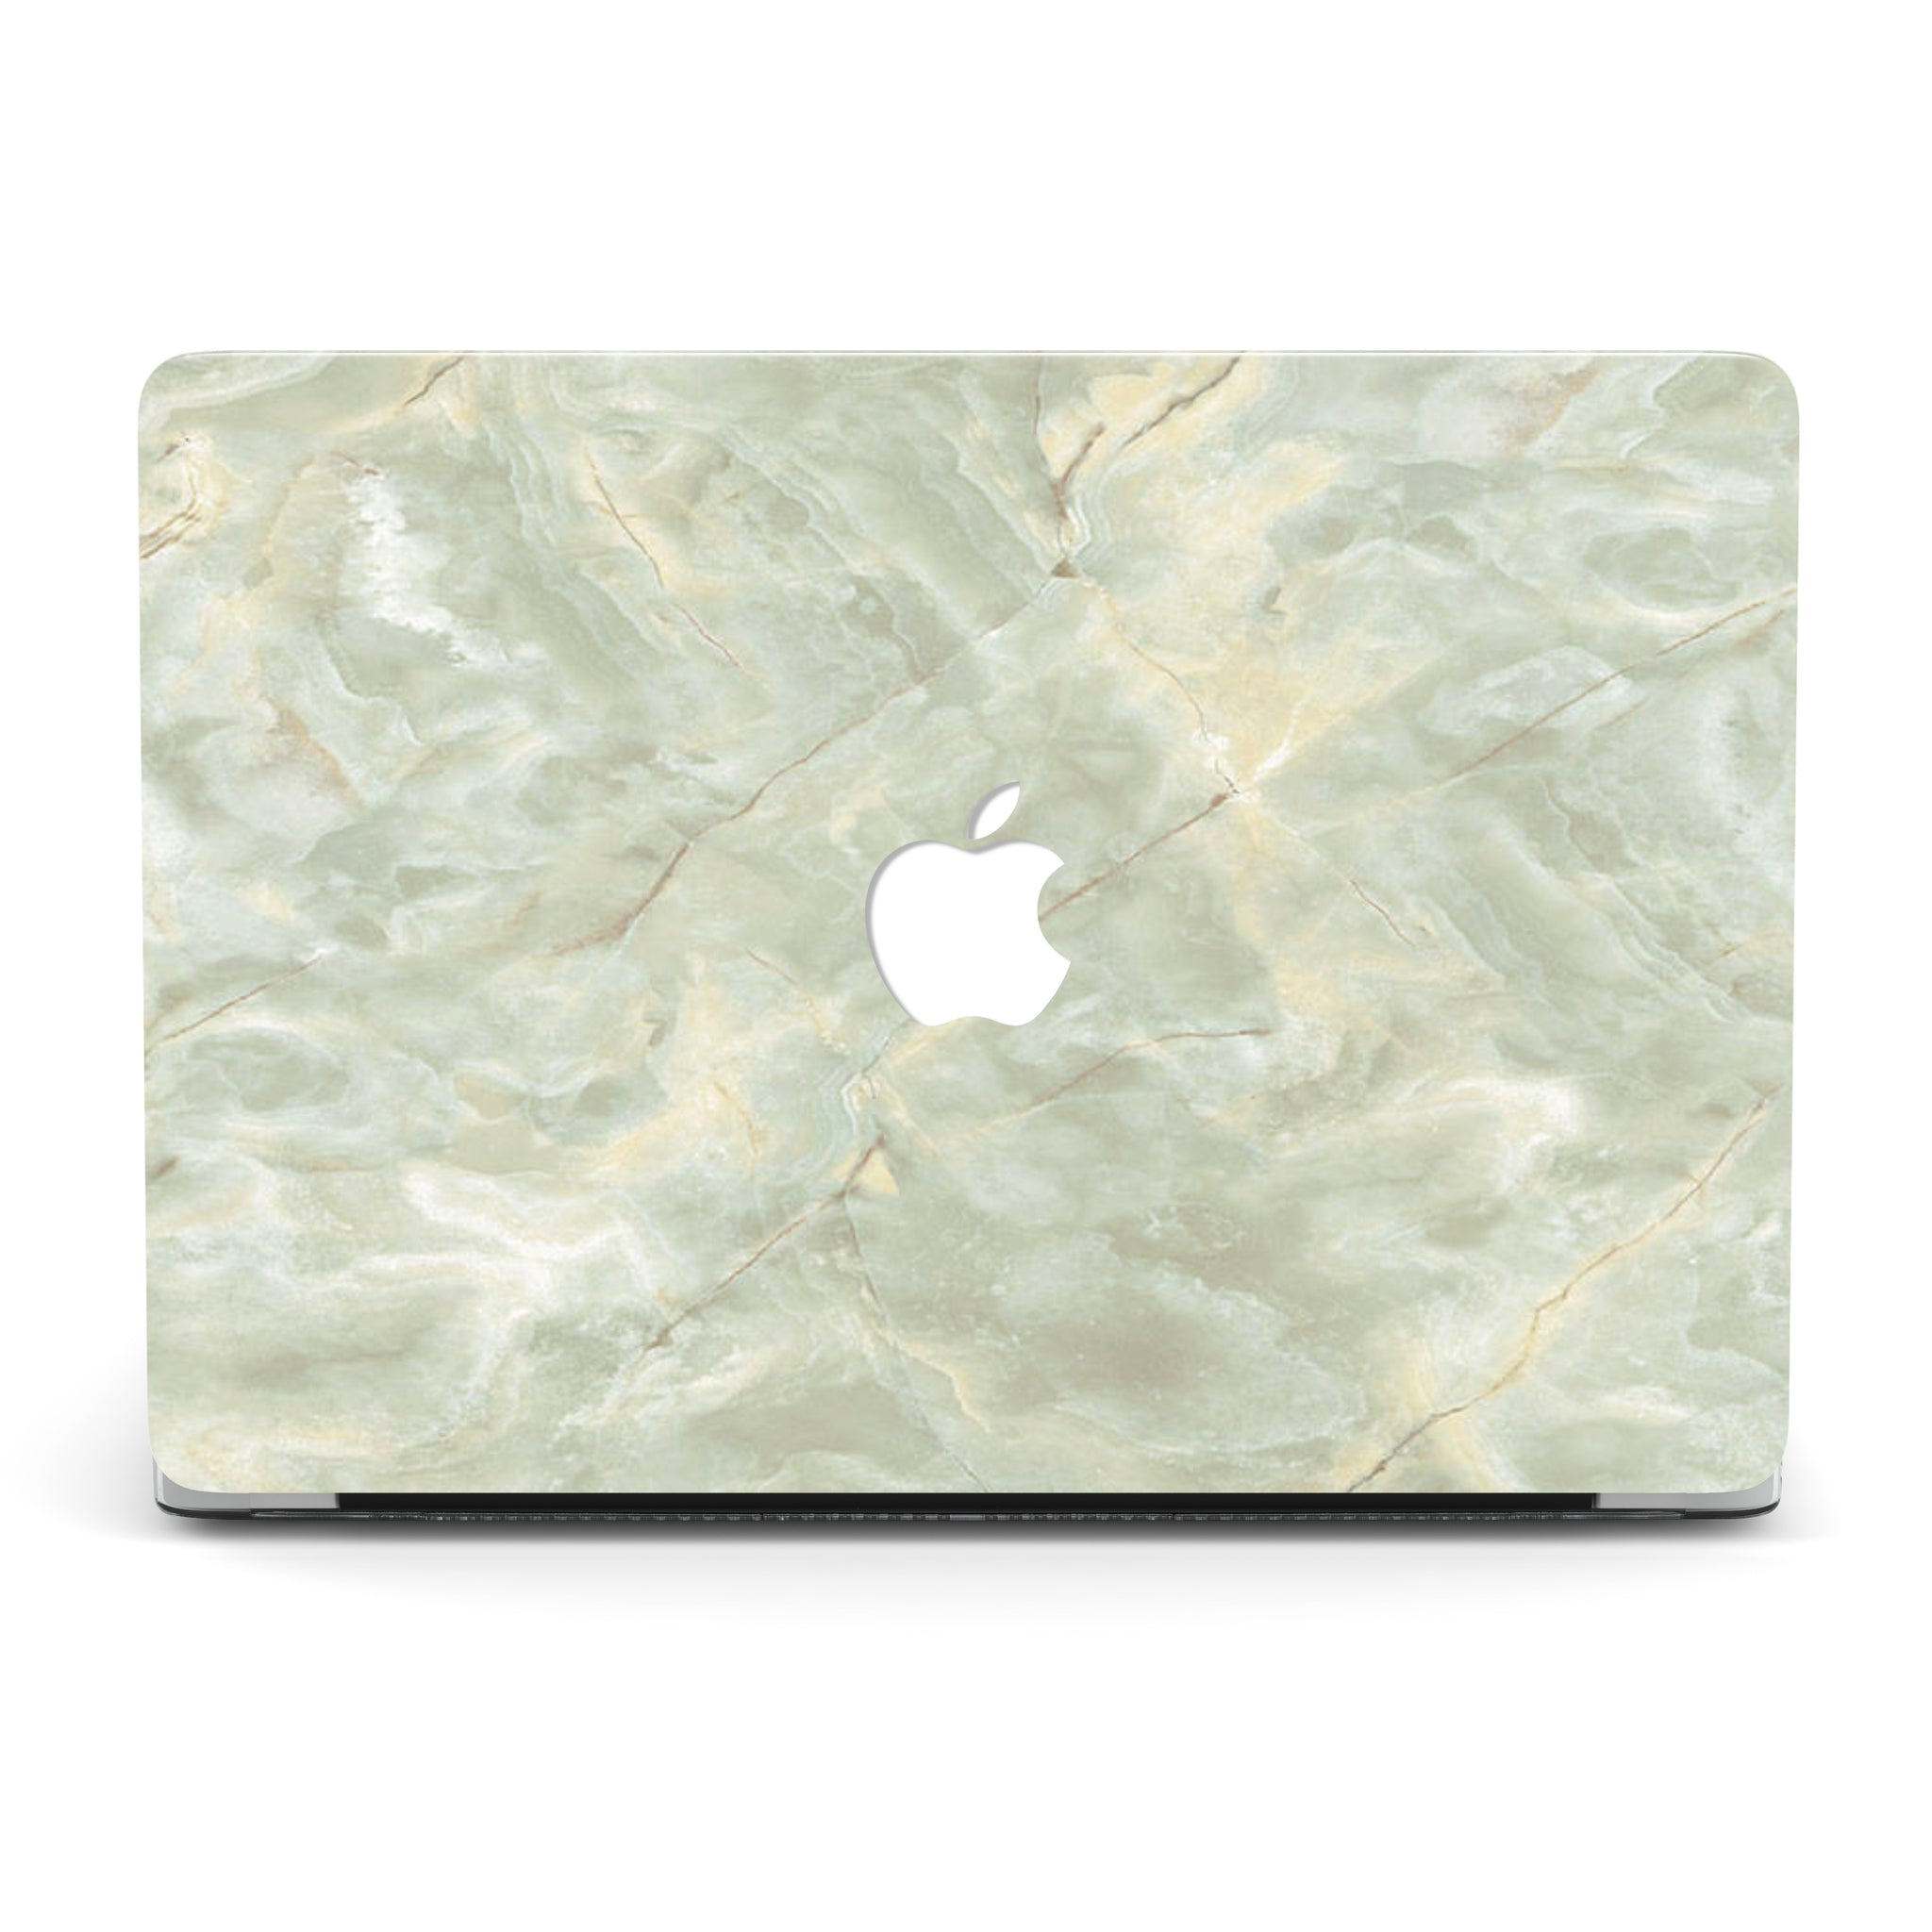 ALL THAT JADE MACBOOK CASE